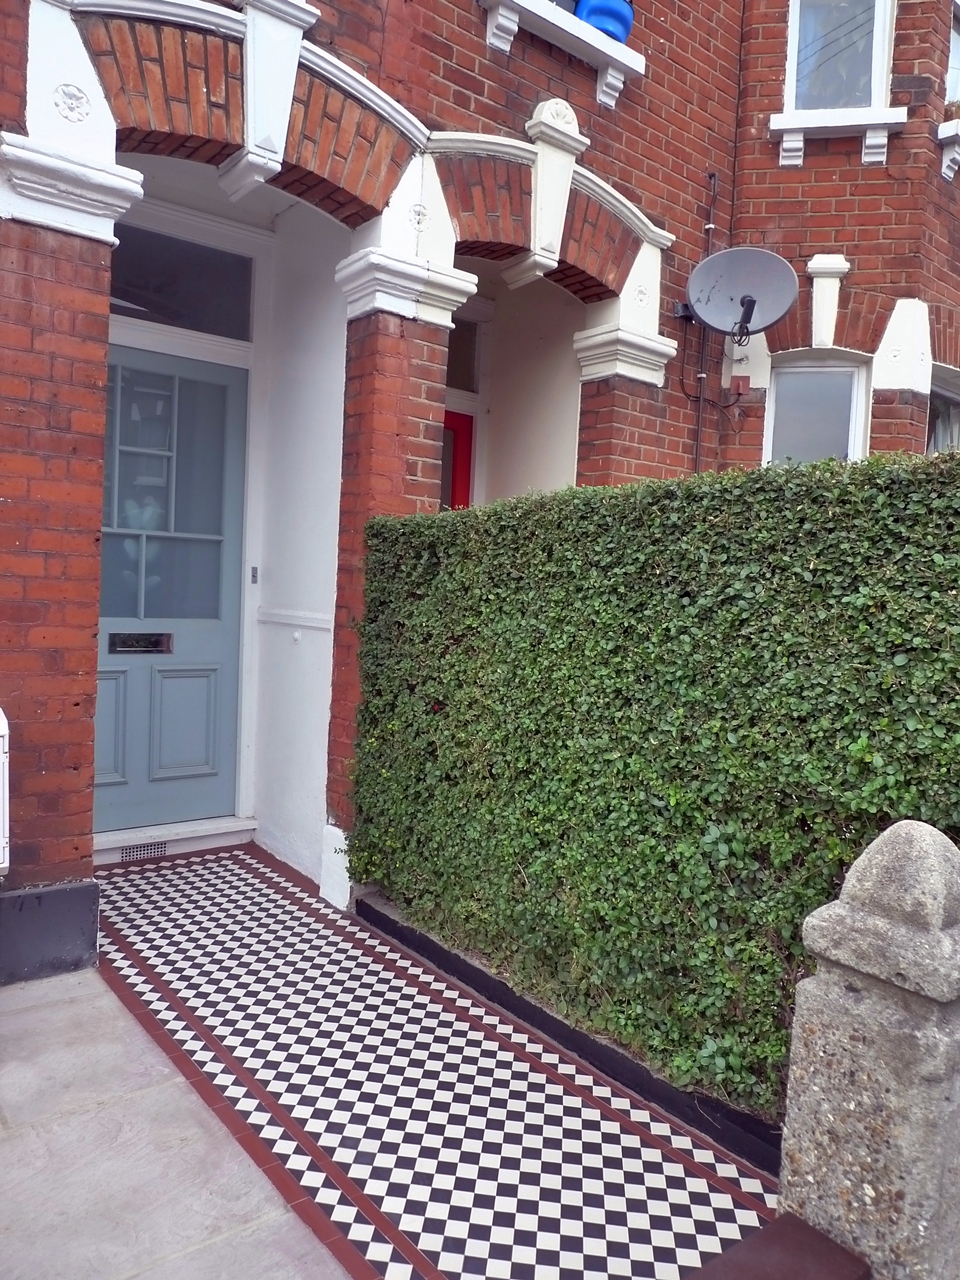 black-and-white-victorian-mosaic-tile-path-with-red-border-london.JPG